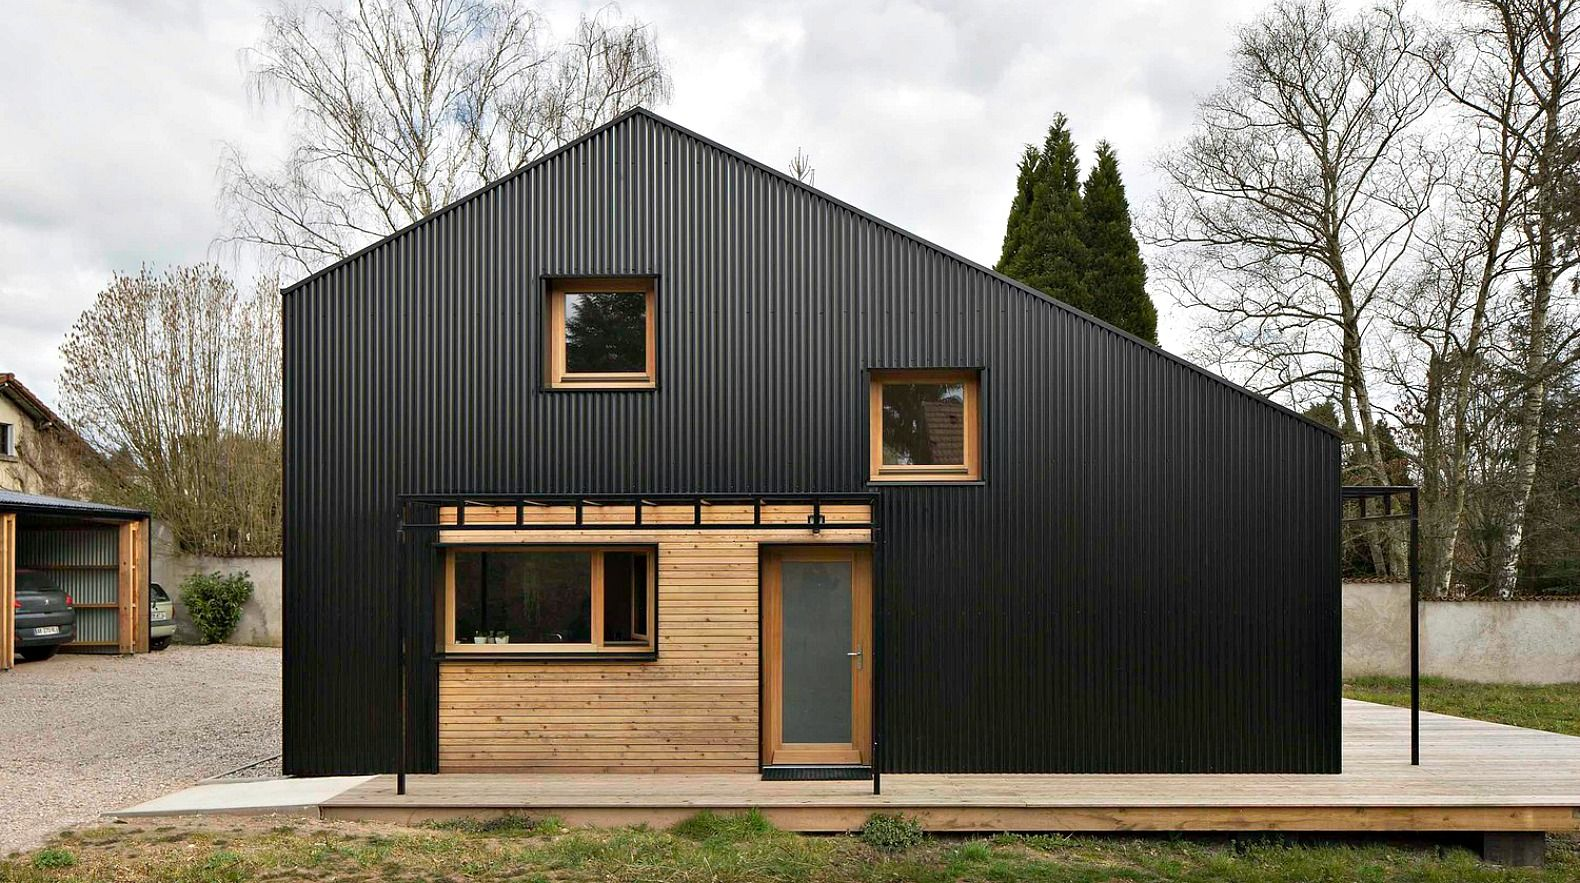 Studiolada Used All Wood Materials To Create This Affordable Open Source Home Anyone Can Build Affordable House Plans Building A House Architecture